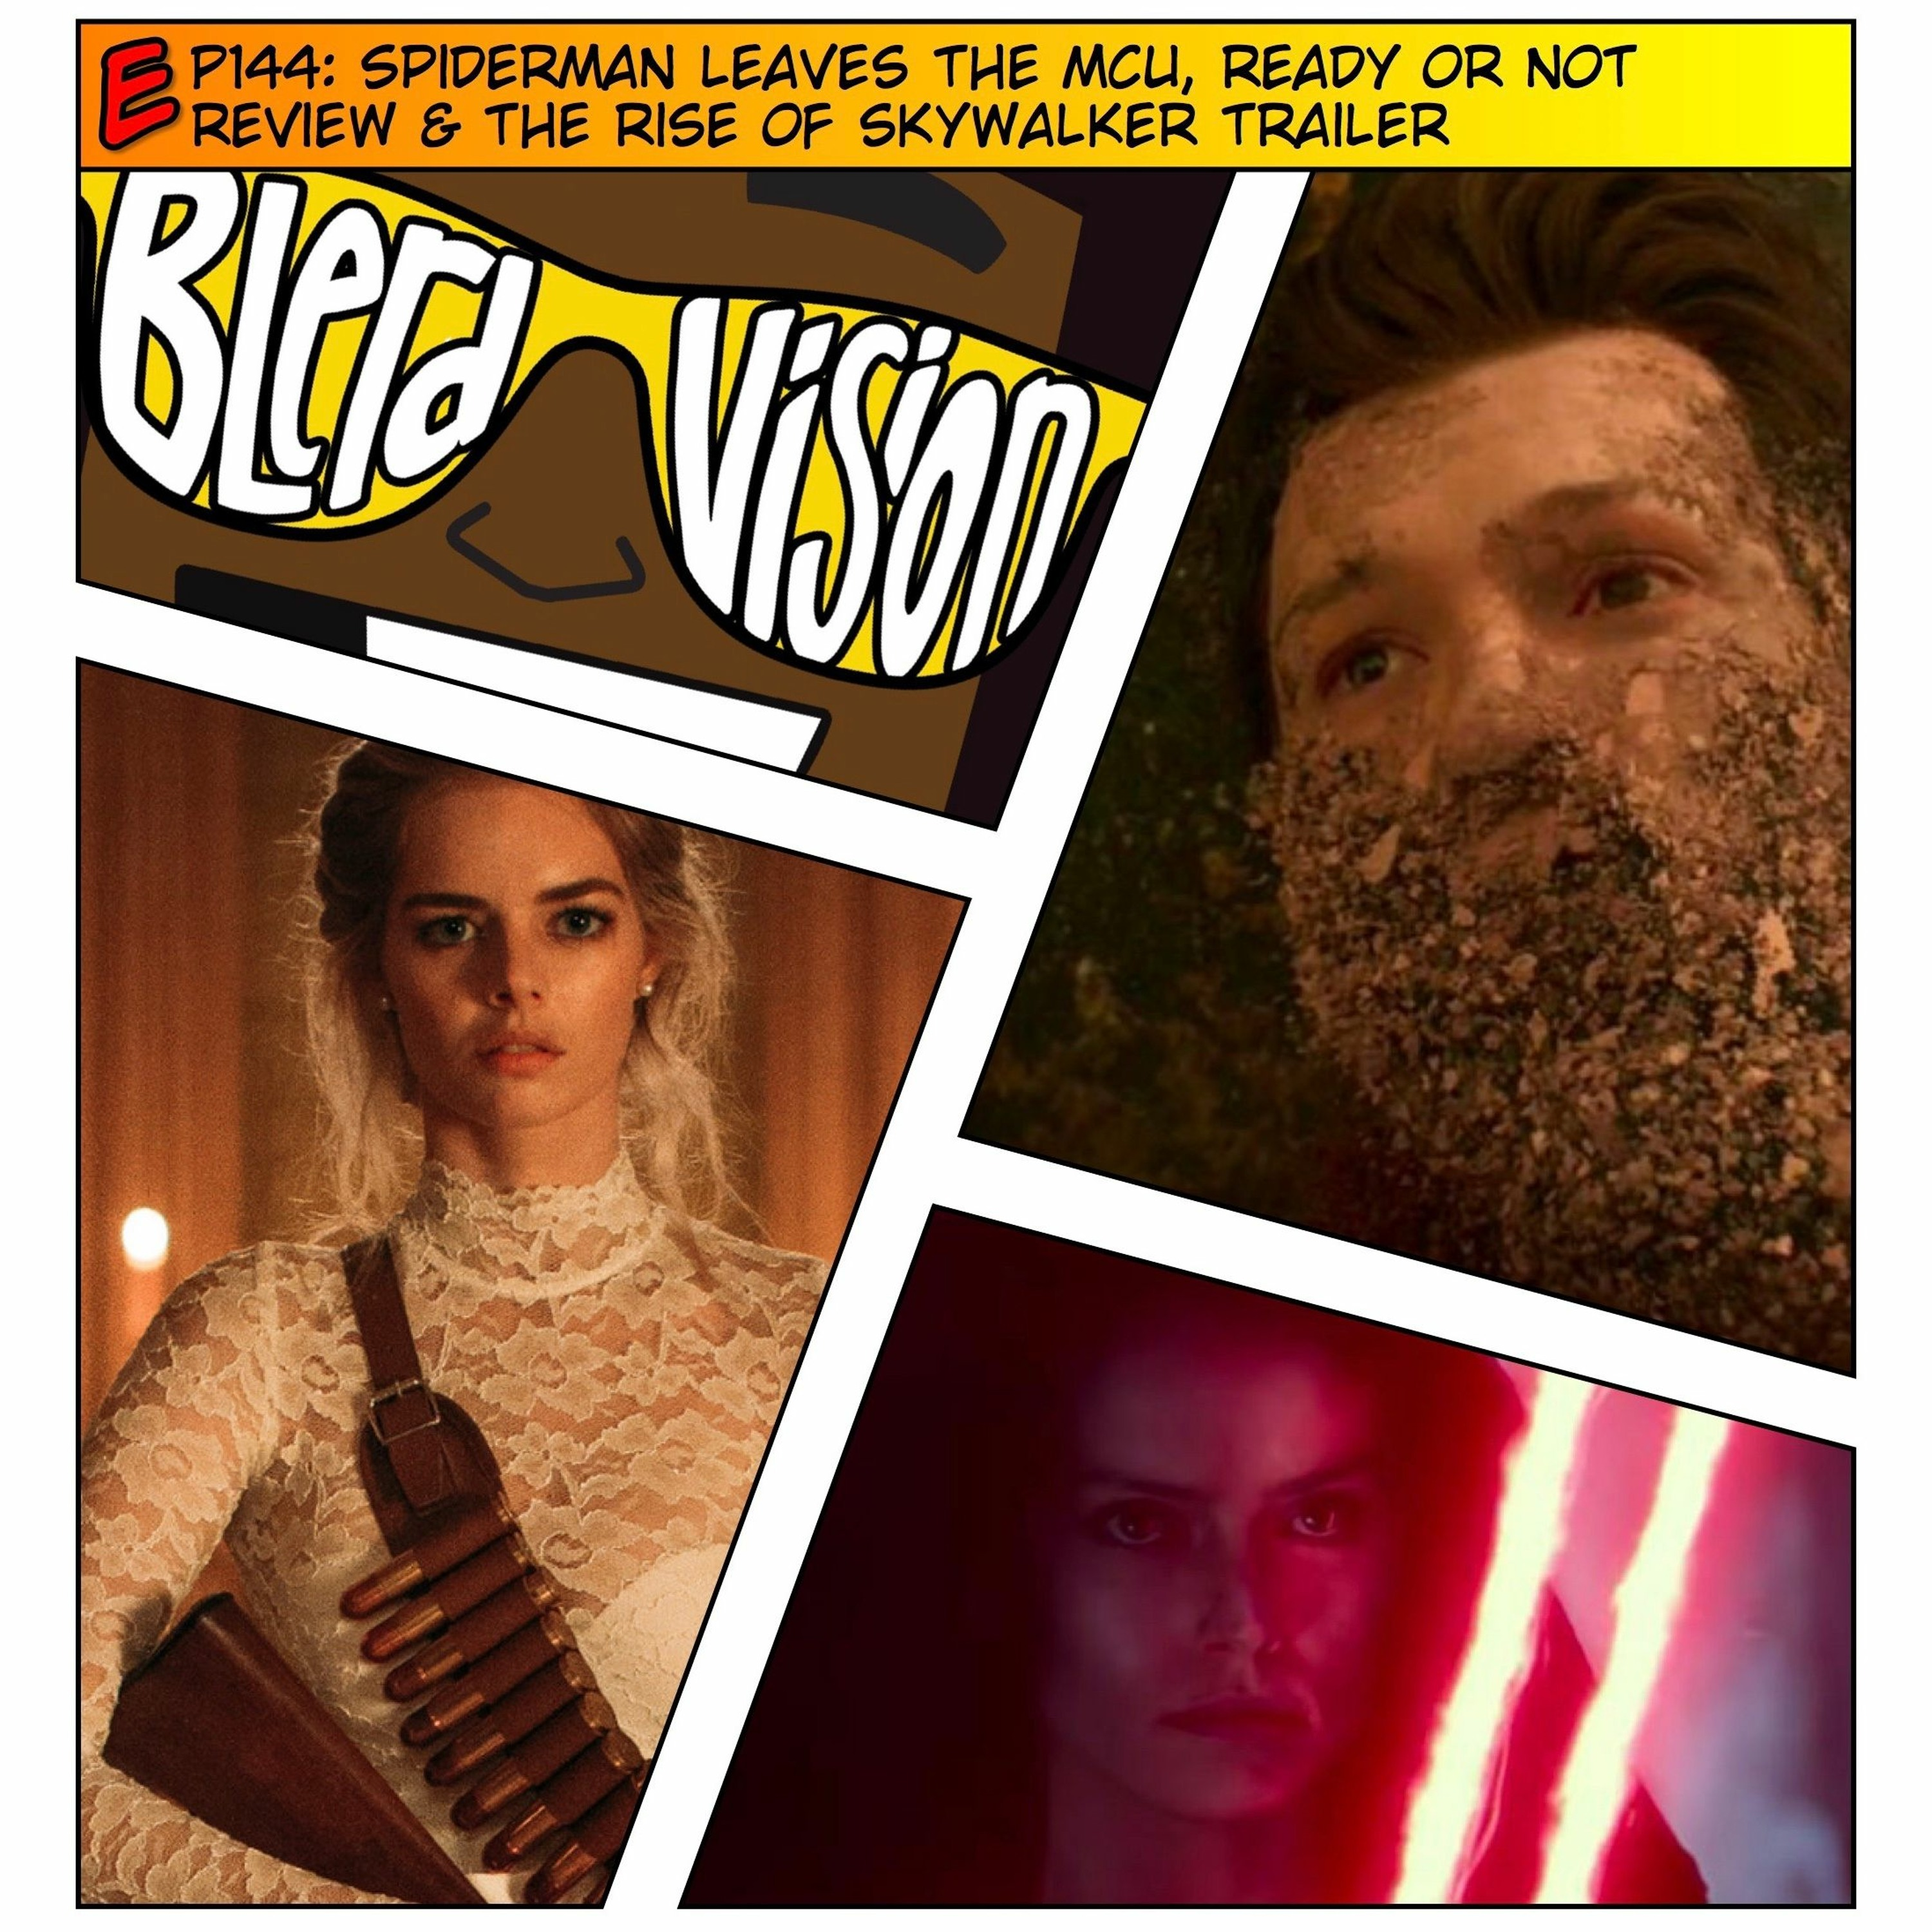 Ep144 Spider Man Leaves The Mcu Ready Or Not Review The Rise Of Skywalker Trailer Blerd Vision Podcast Podtail